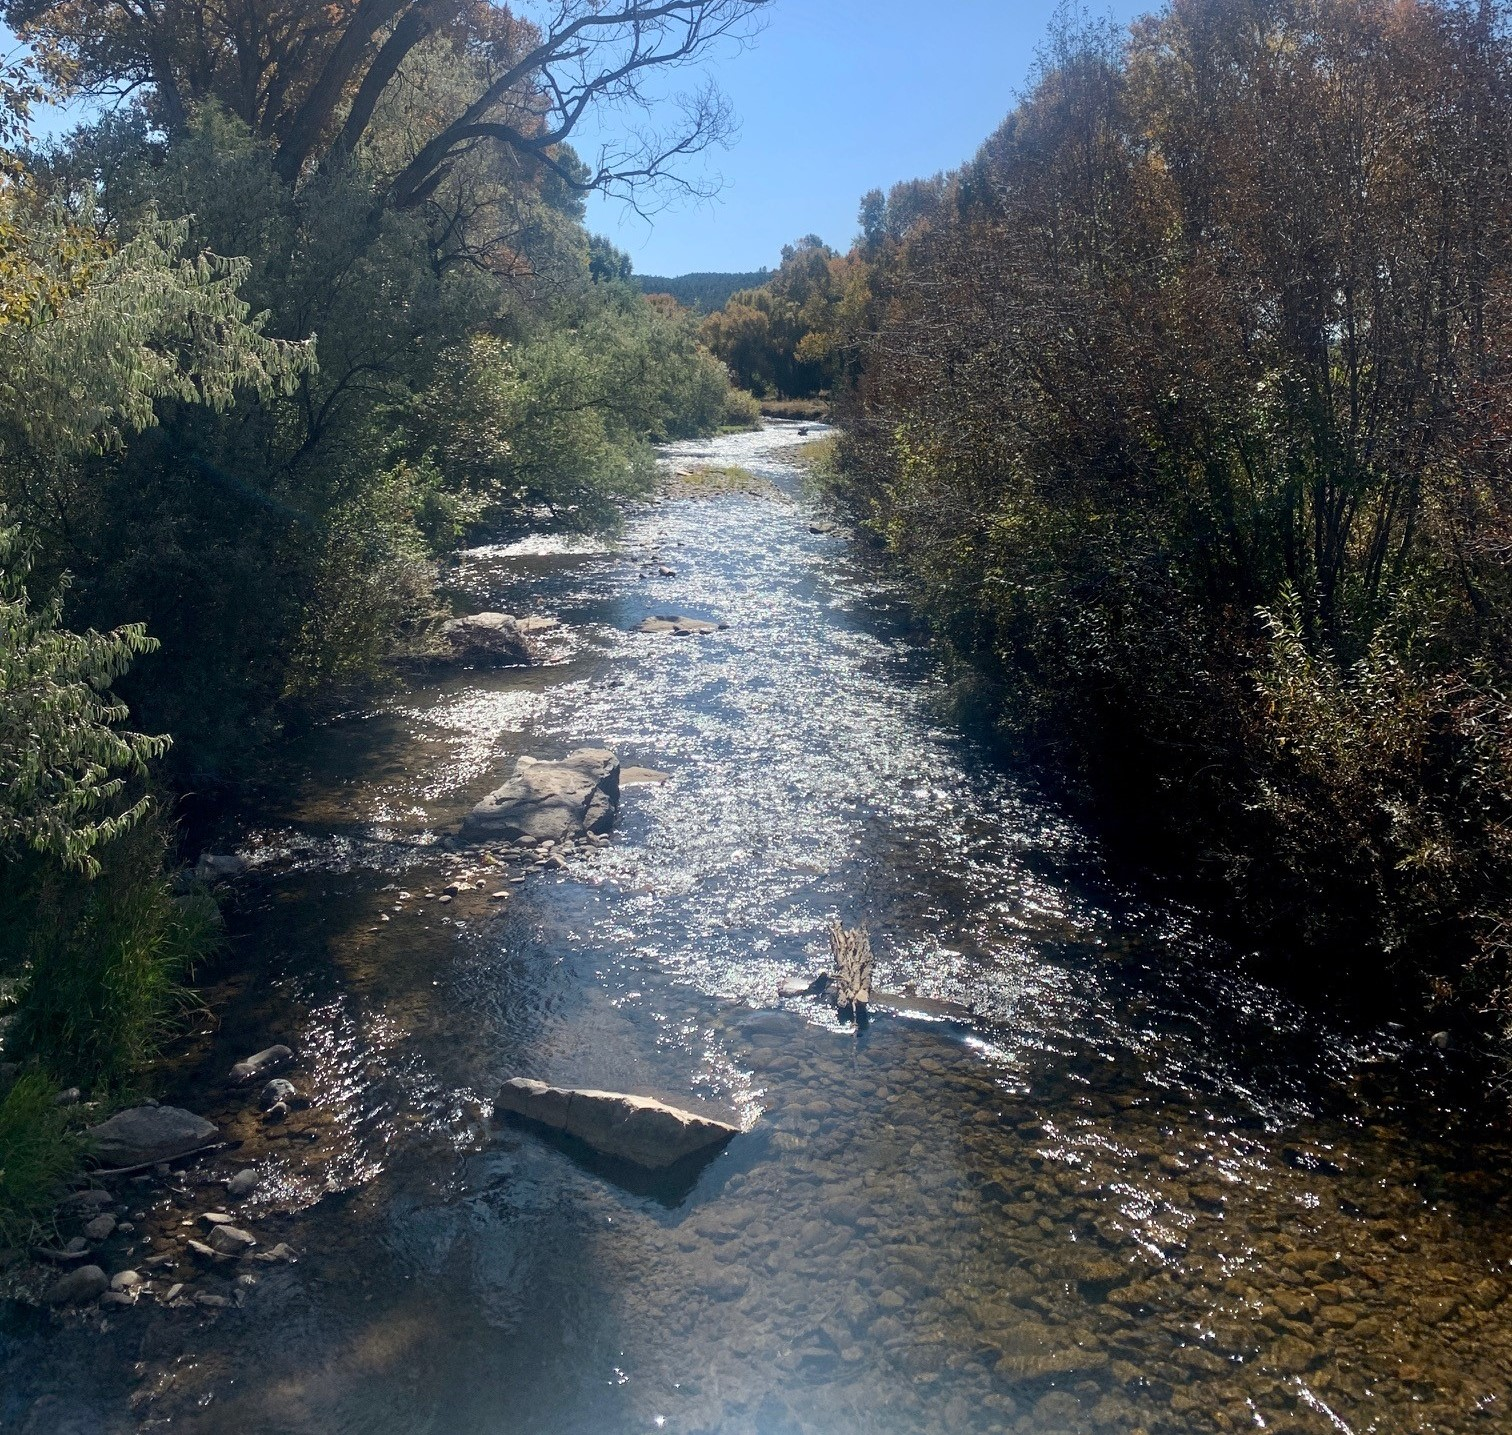 Pecos River labeled among most endangered waterways due to potential mining